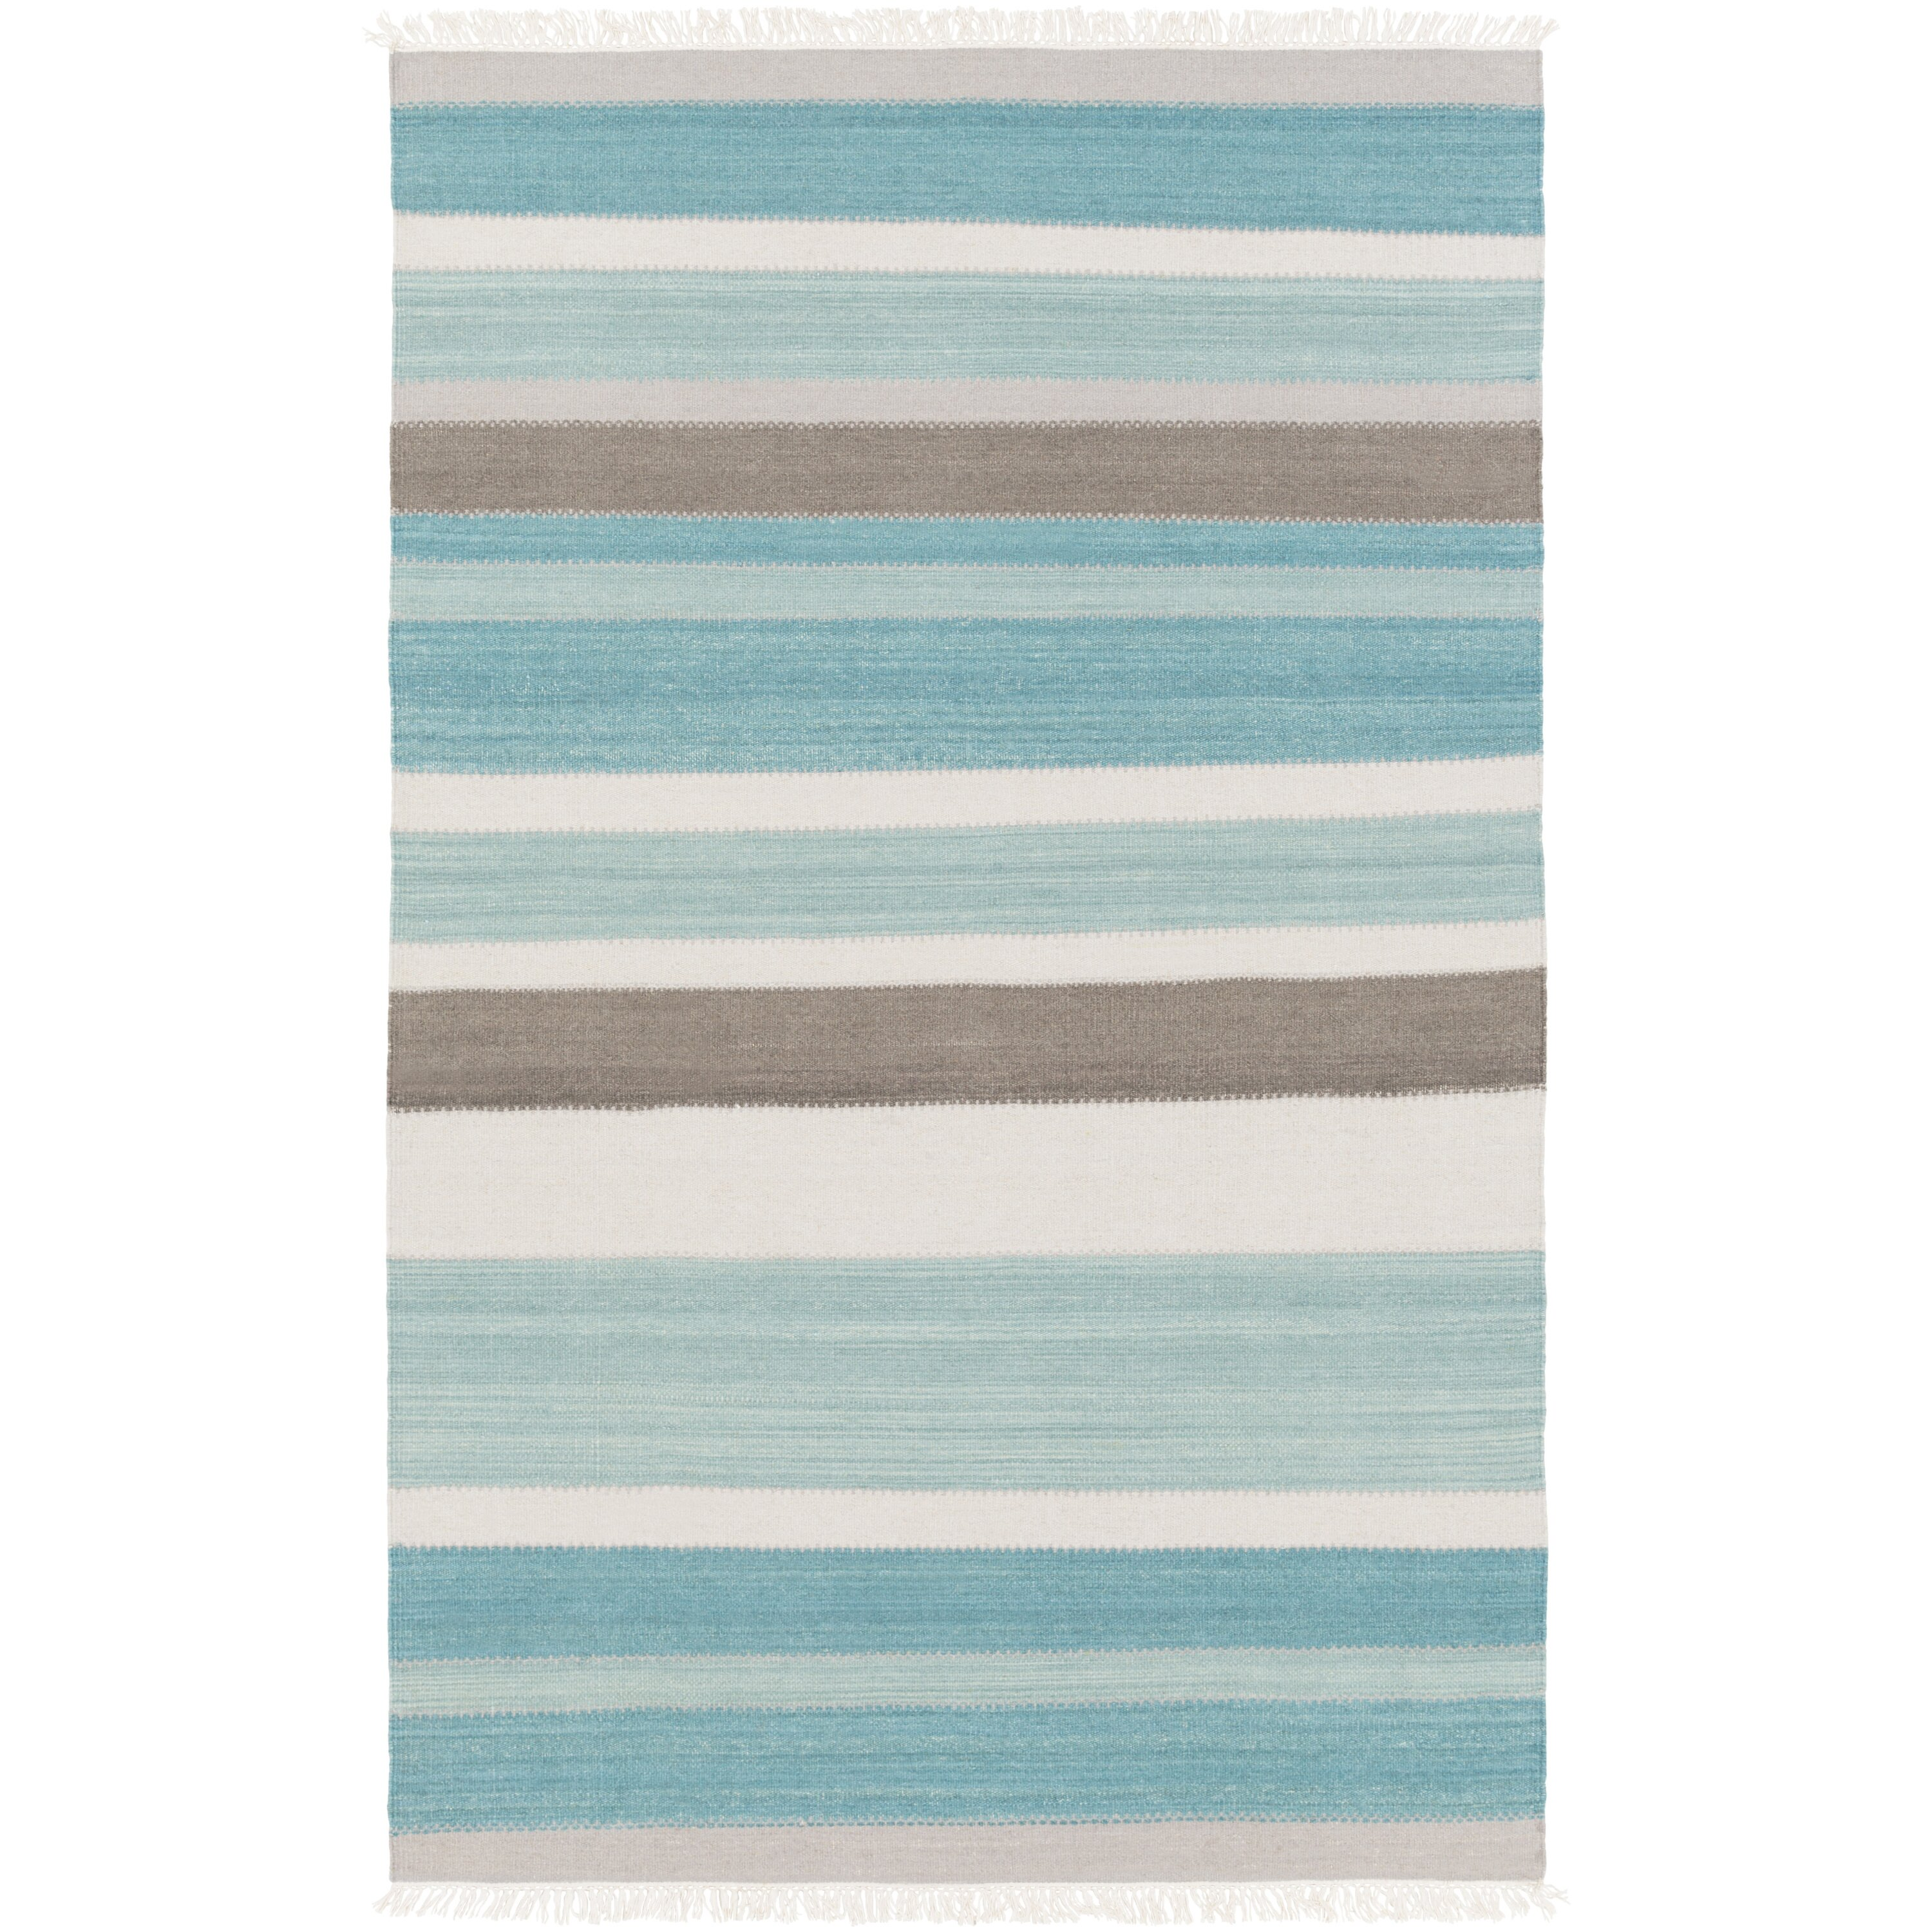 Beachcrest Home Garcon Point Teal Light Gray Area Rug